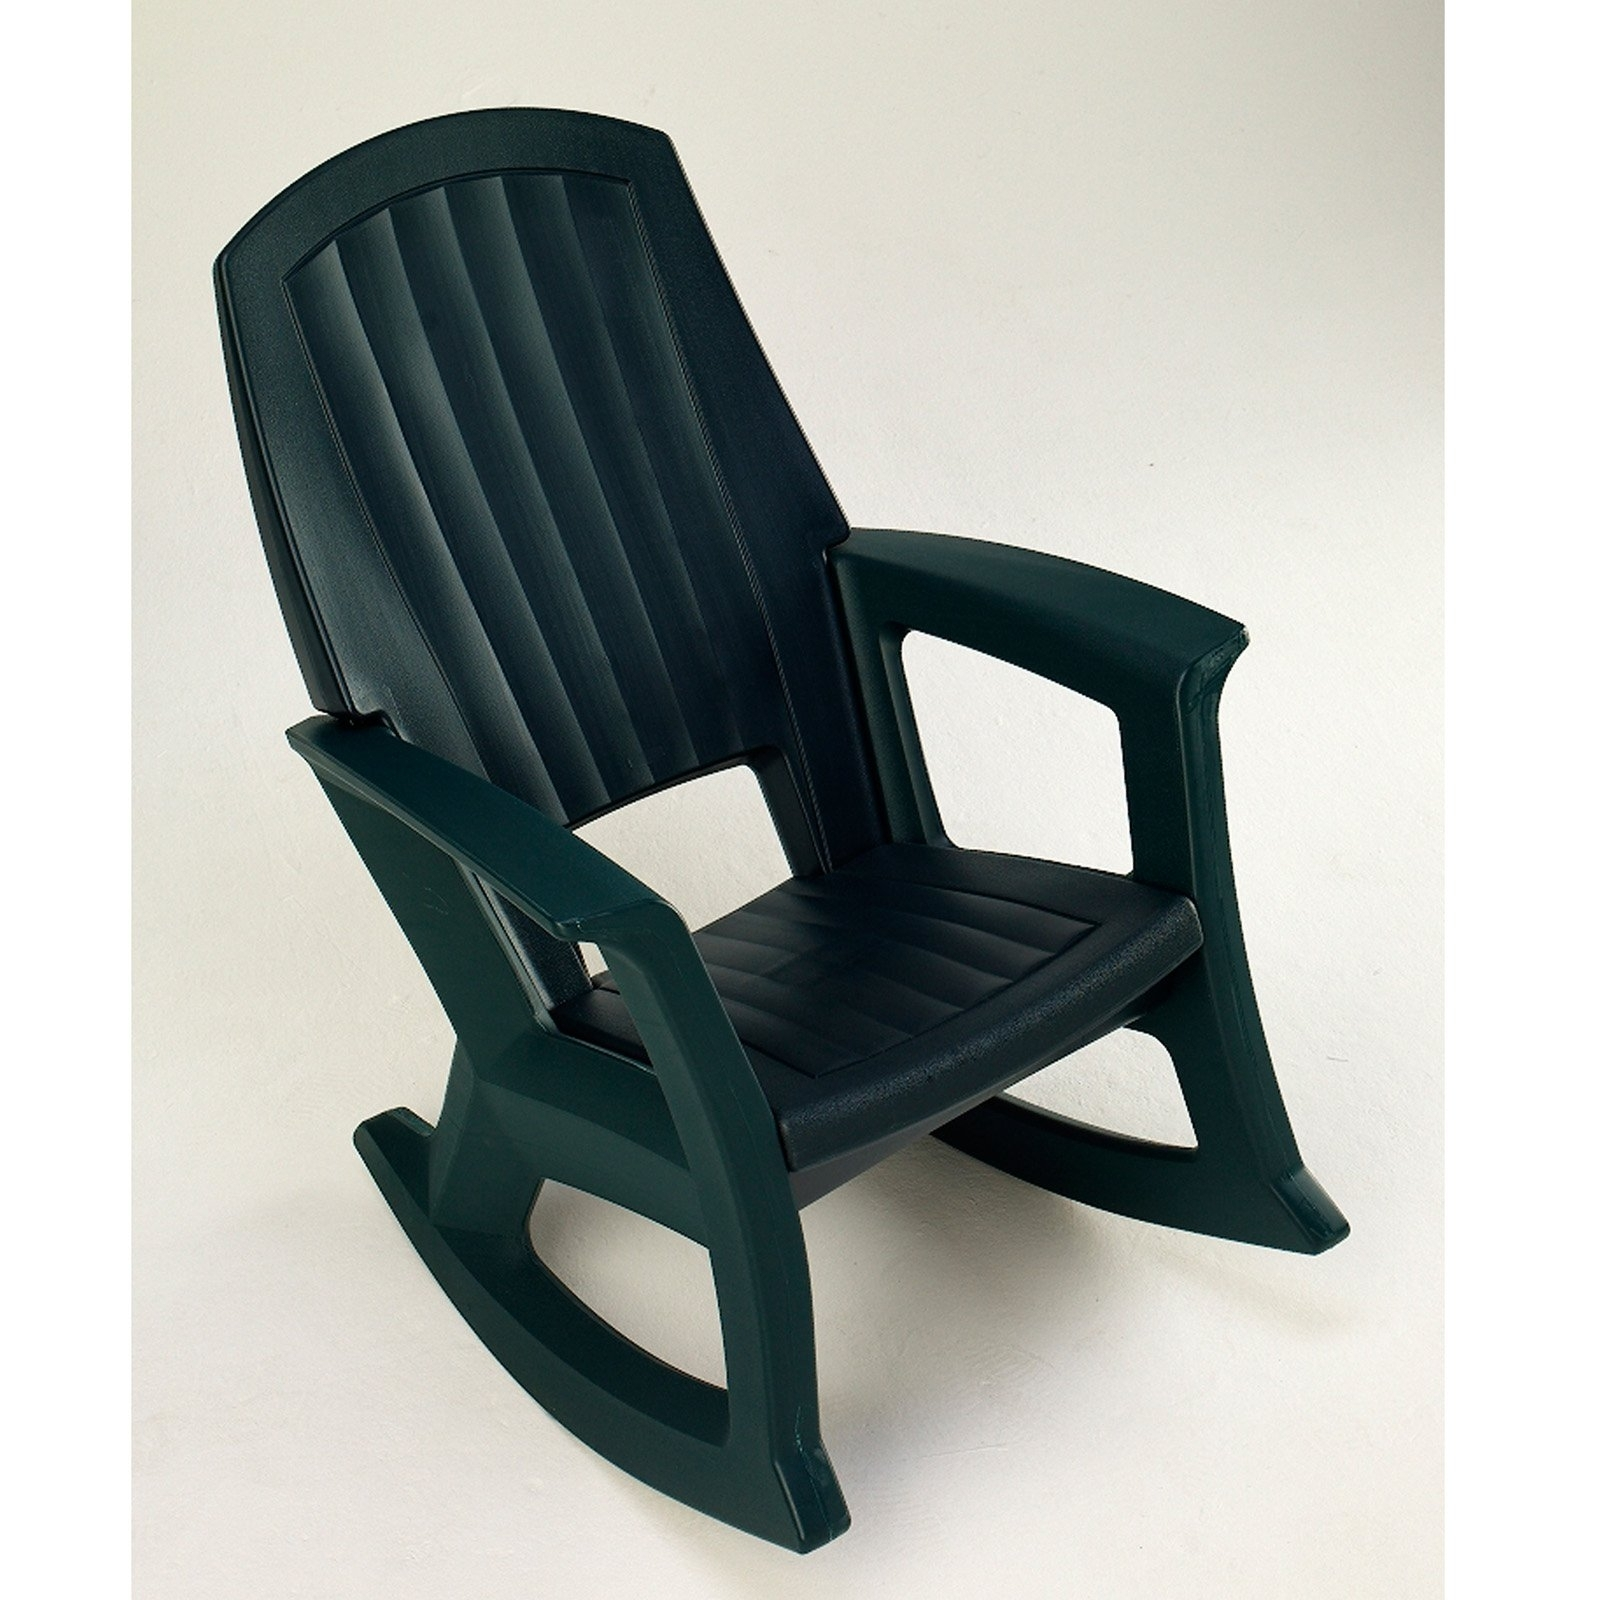 Plastic Patio Rocking Chairs Throughout Current Semco Recycled Plastic Rocking Chair – Walmart (View 14 of 15)